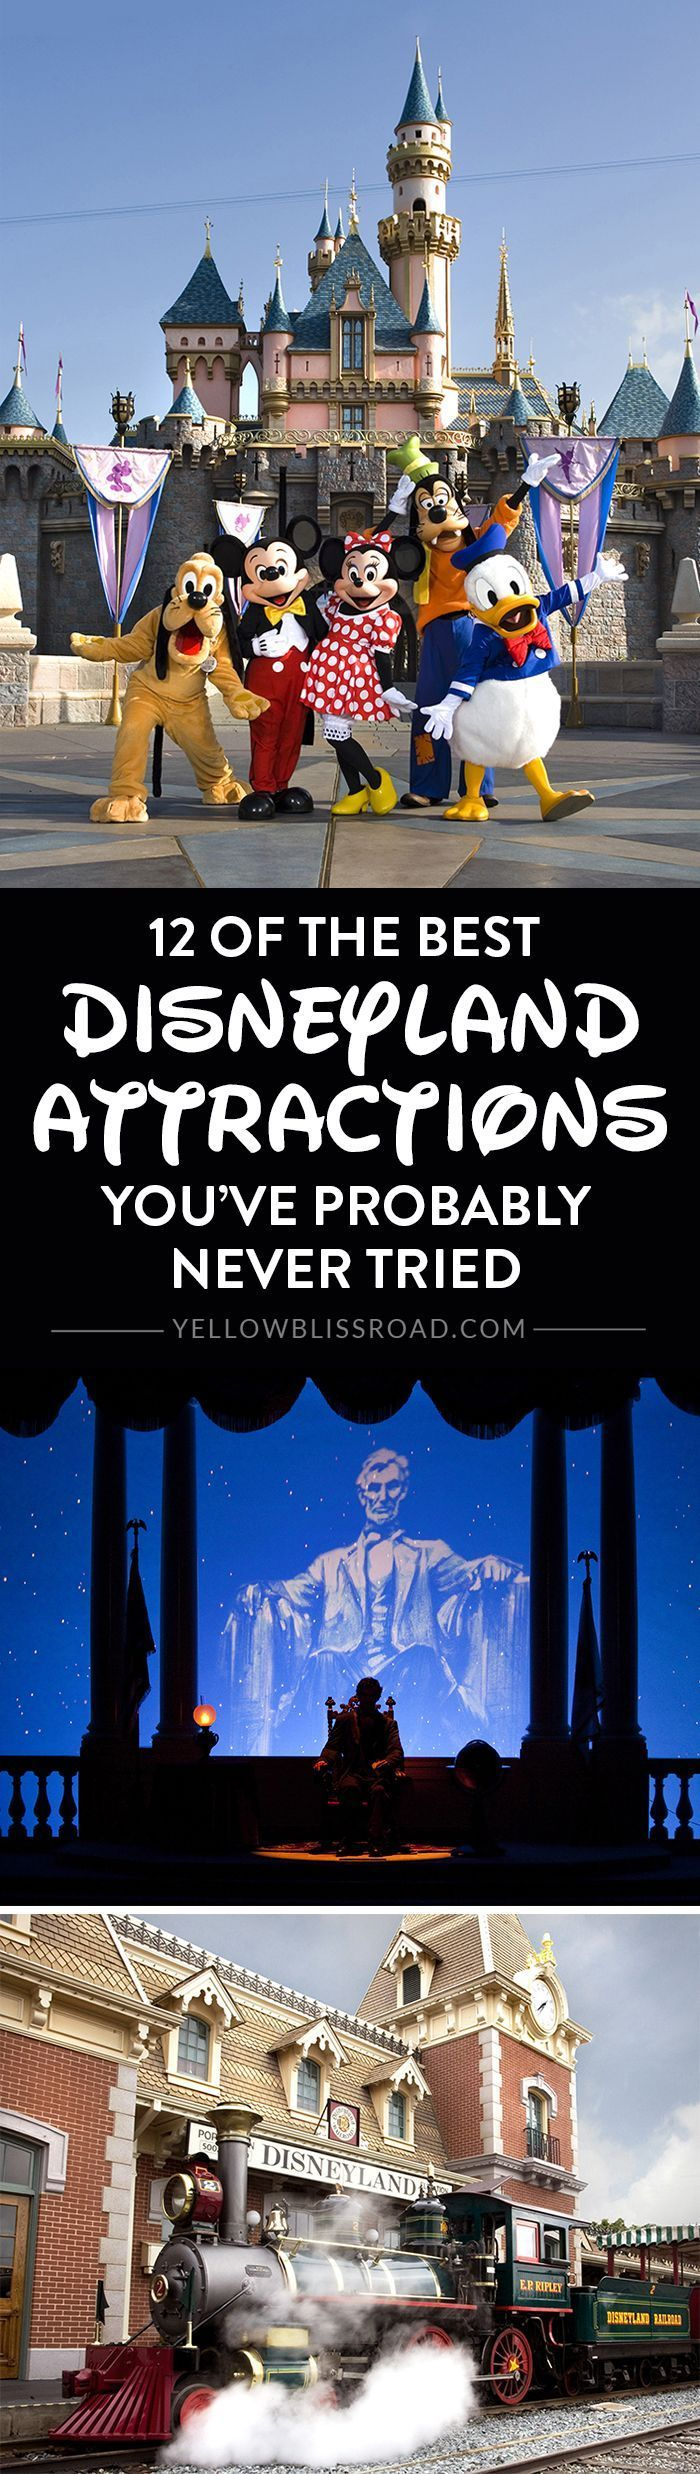 Best Attractions Disneyland Ideas On Pinterest Disneyland - The 12 best disneyland attractions for your little princess